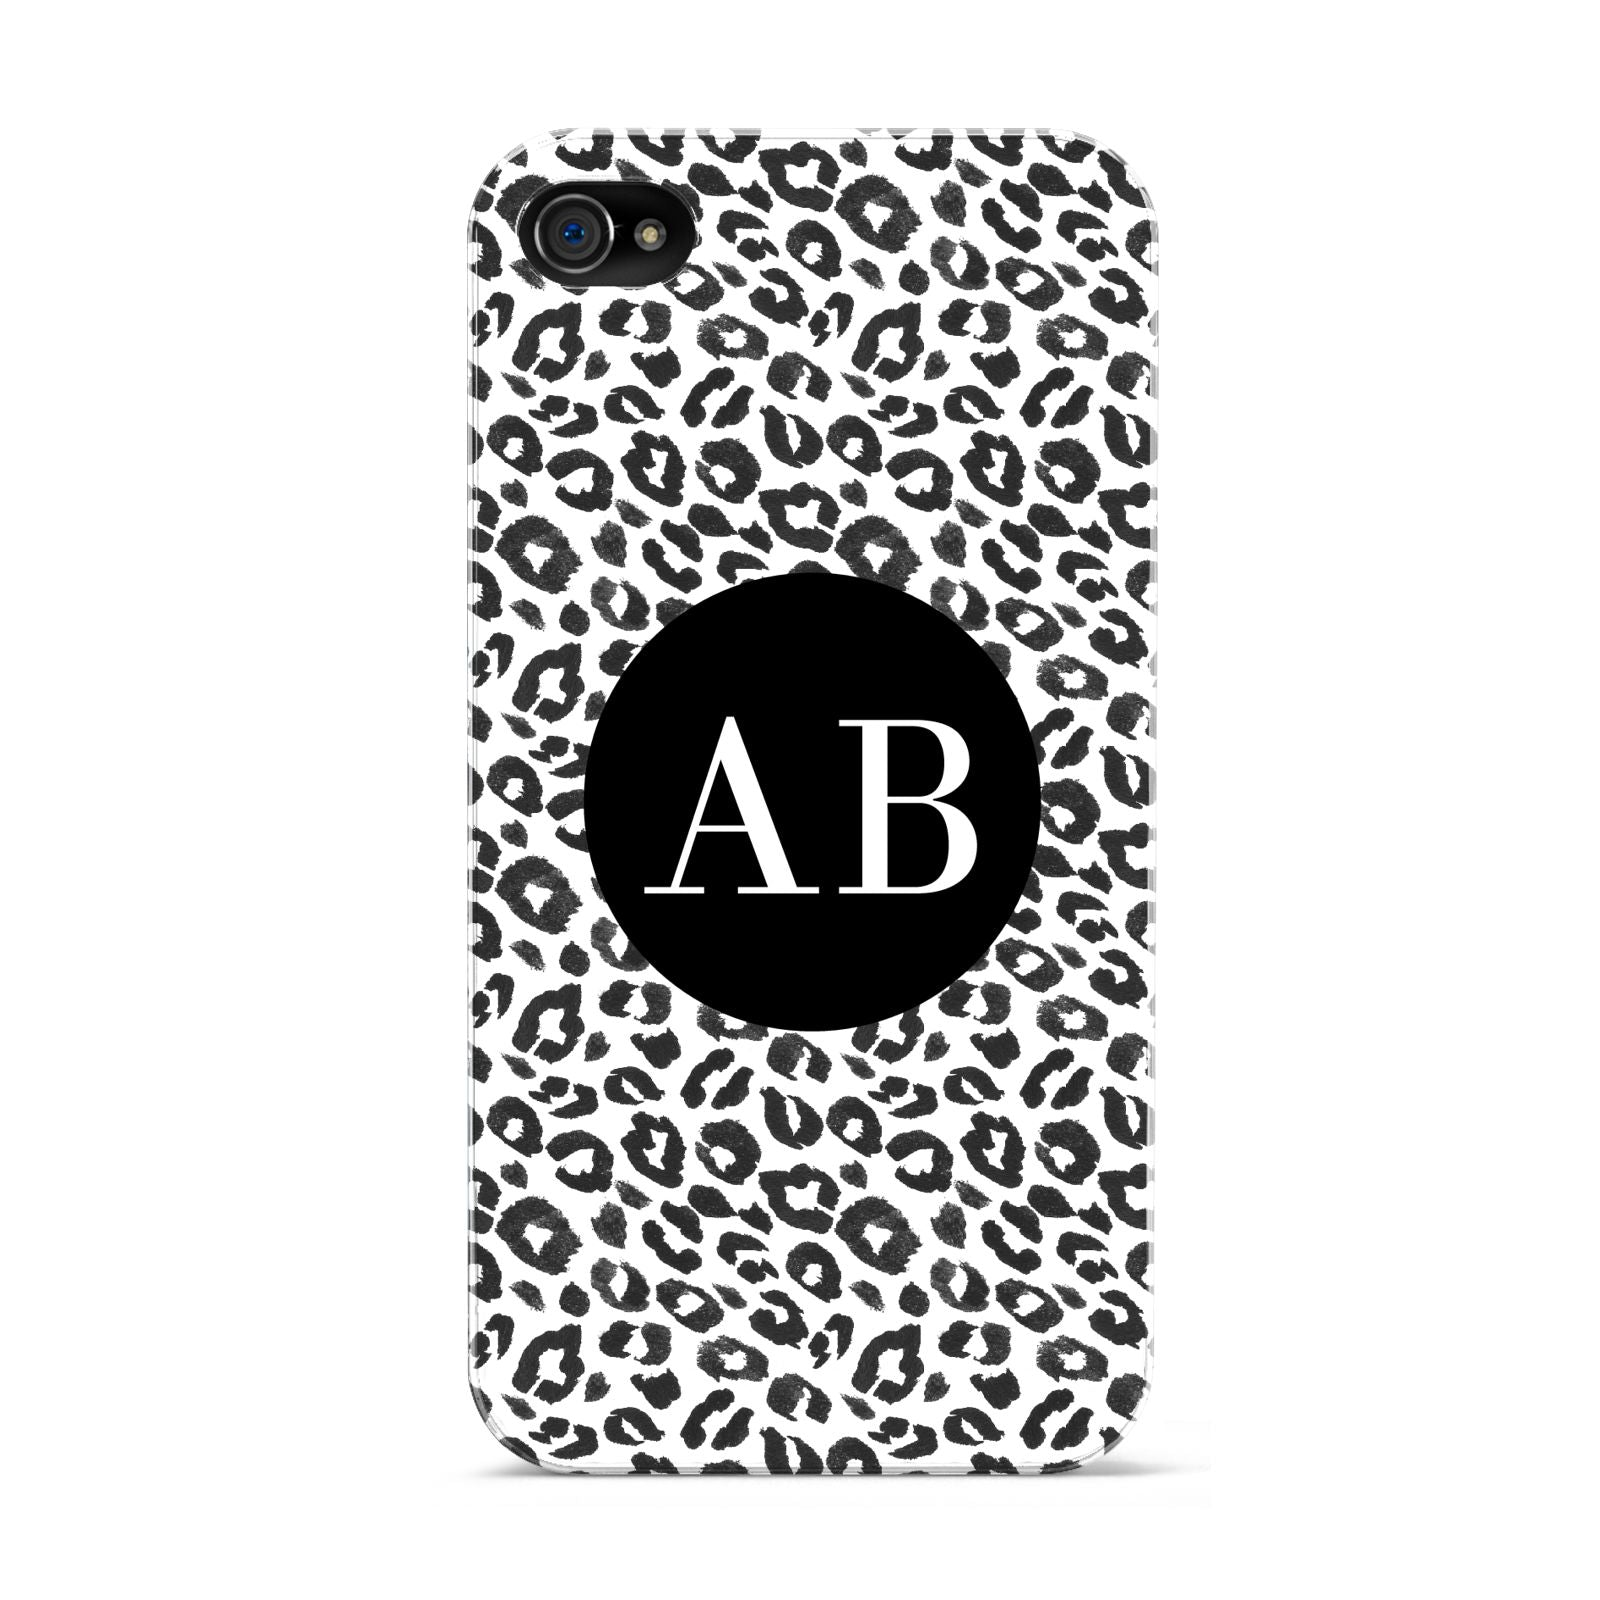 Leopard Print Black and White Apple iPhone 4s Case